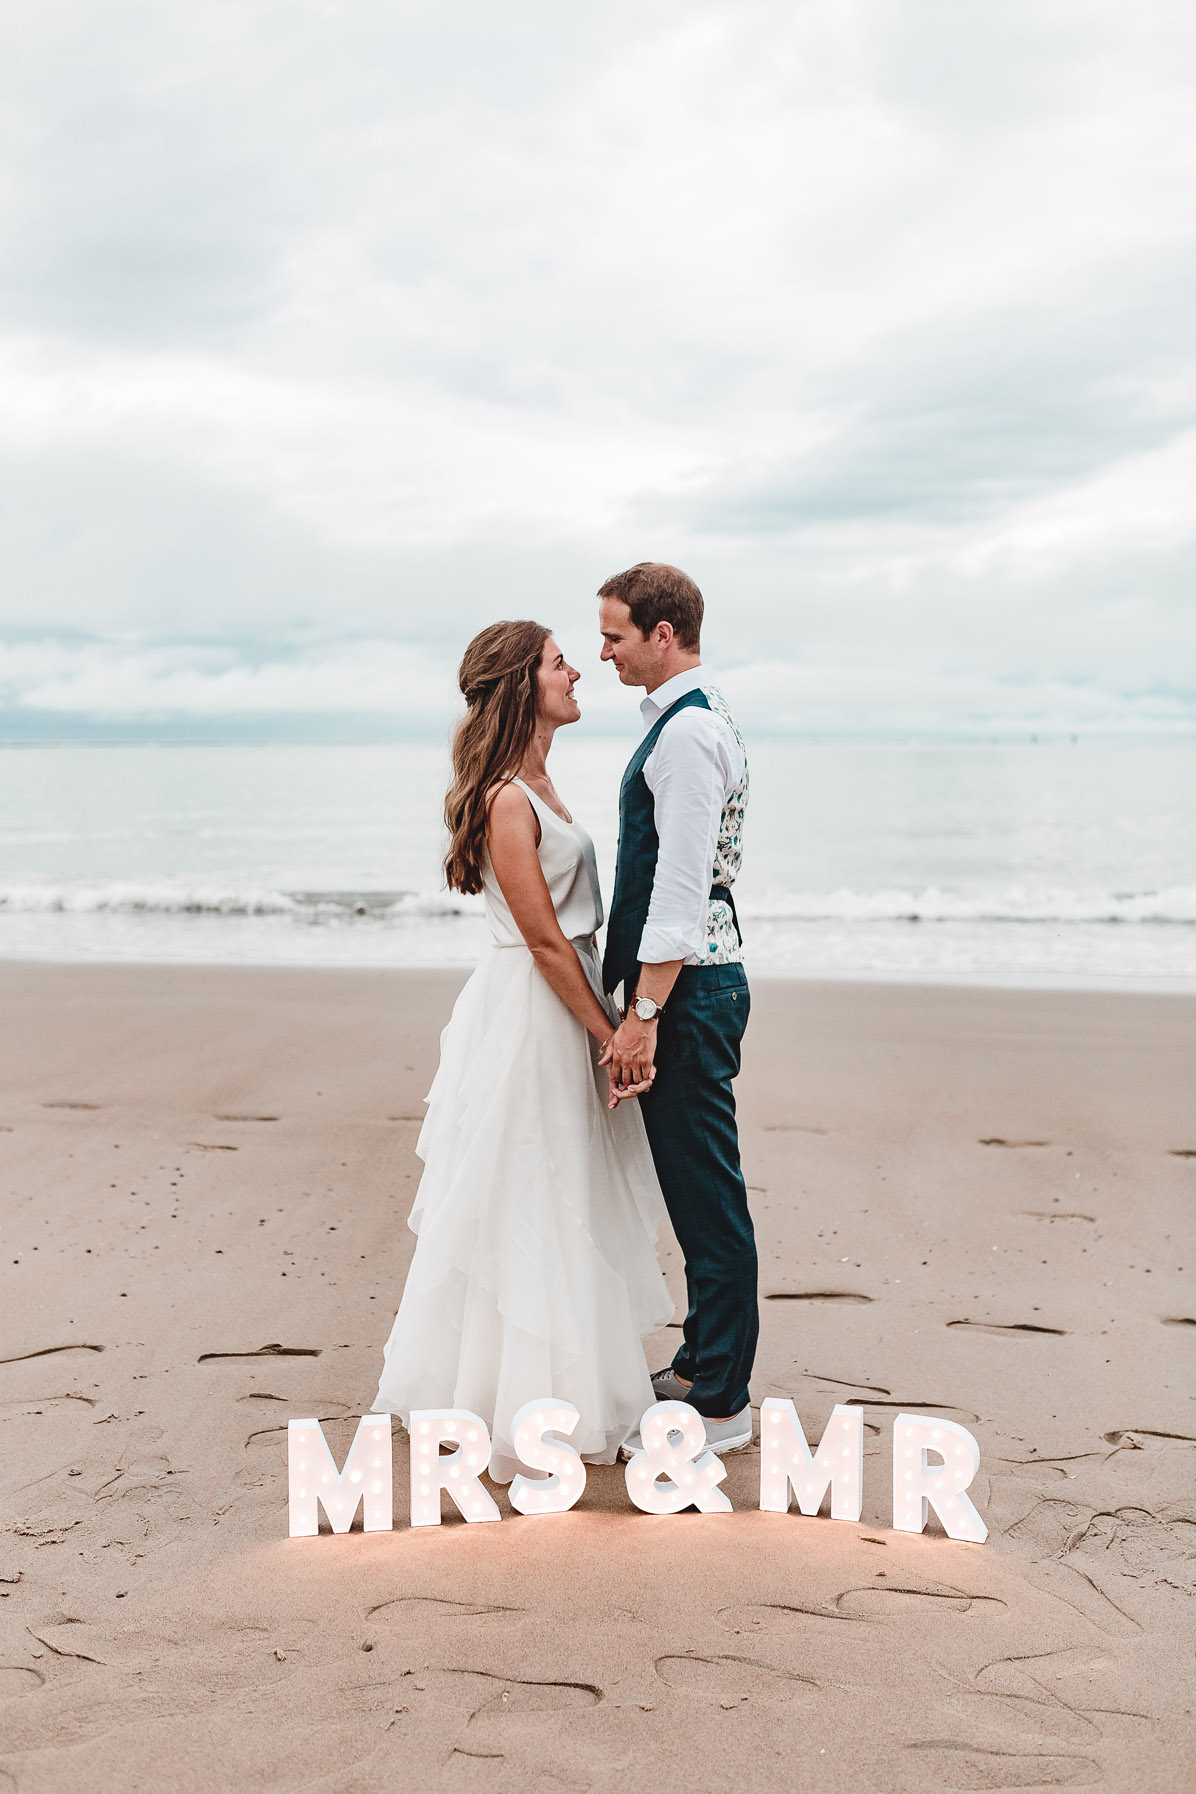 Destination Wedding Fotograf in Renesse, Holland bei einer Stradhochzeit